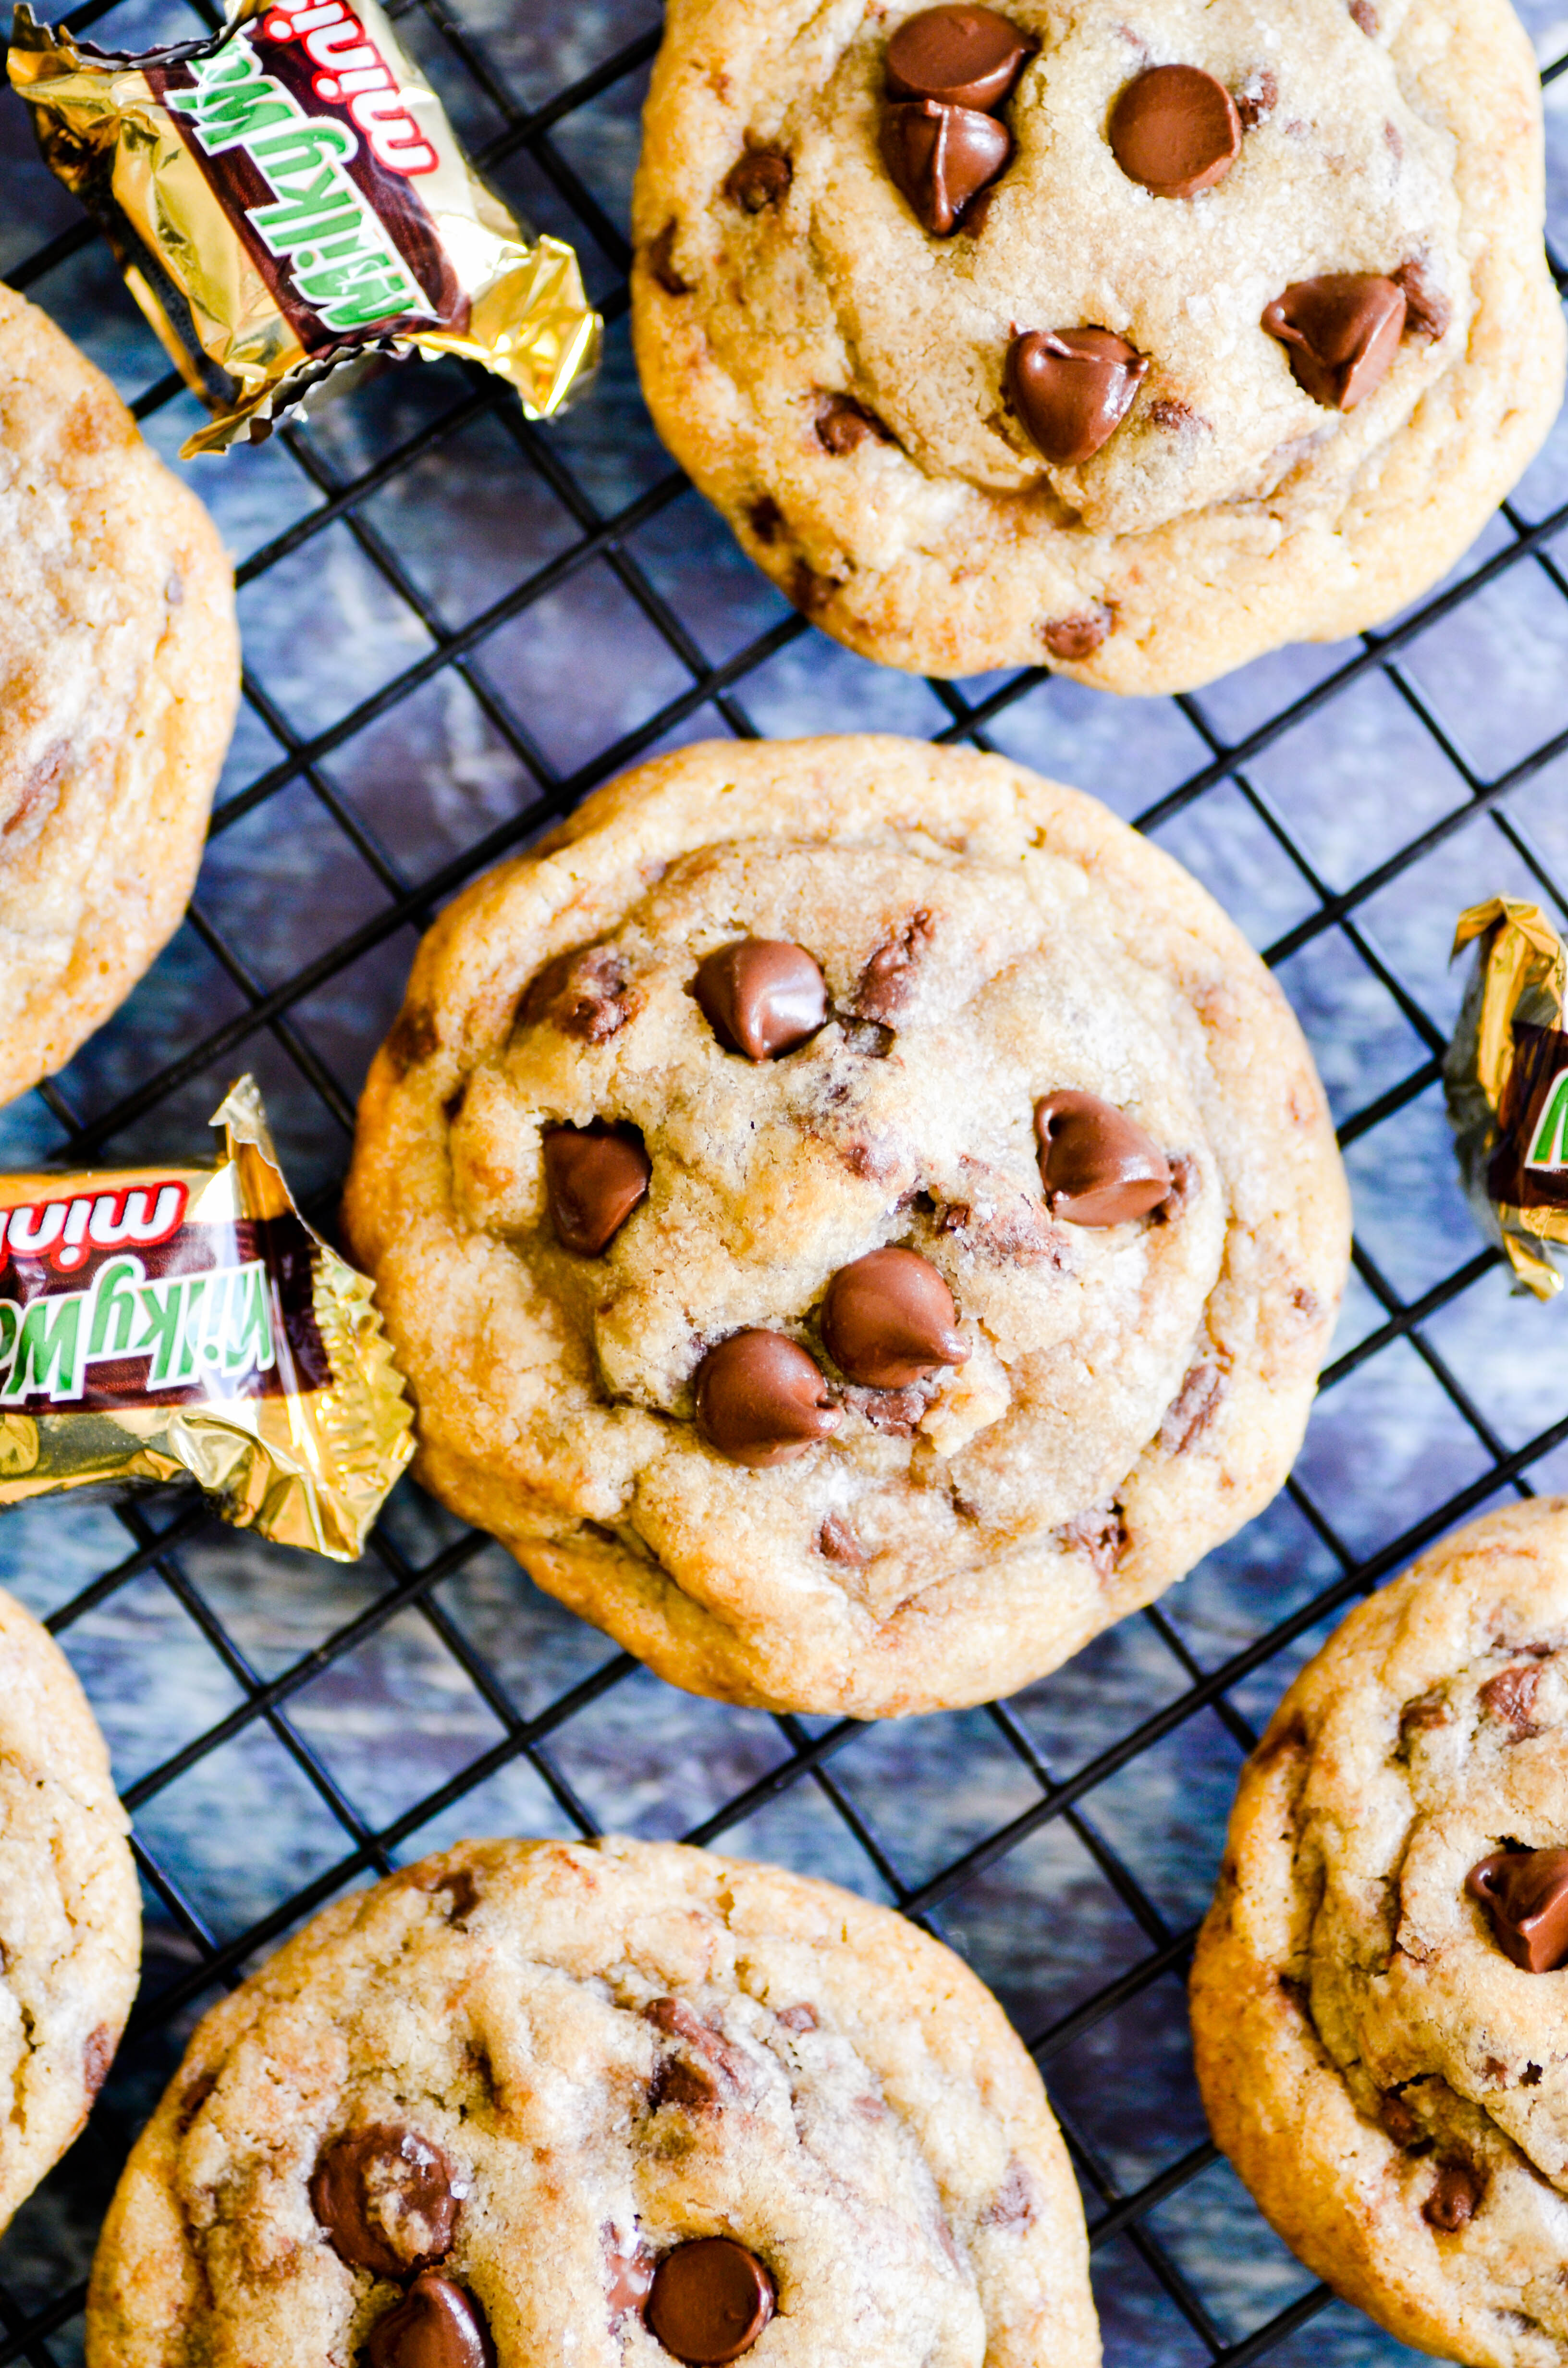 These Milky Way Stuffed Chocolate Chip Cookies are the best possible use of your Halloween candy. I promise 👌🏻.